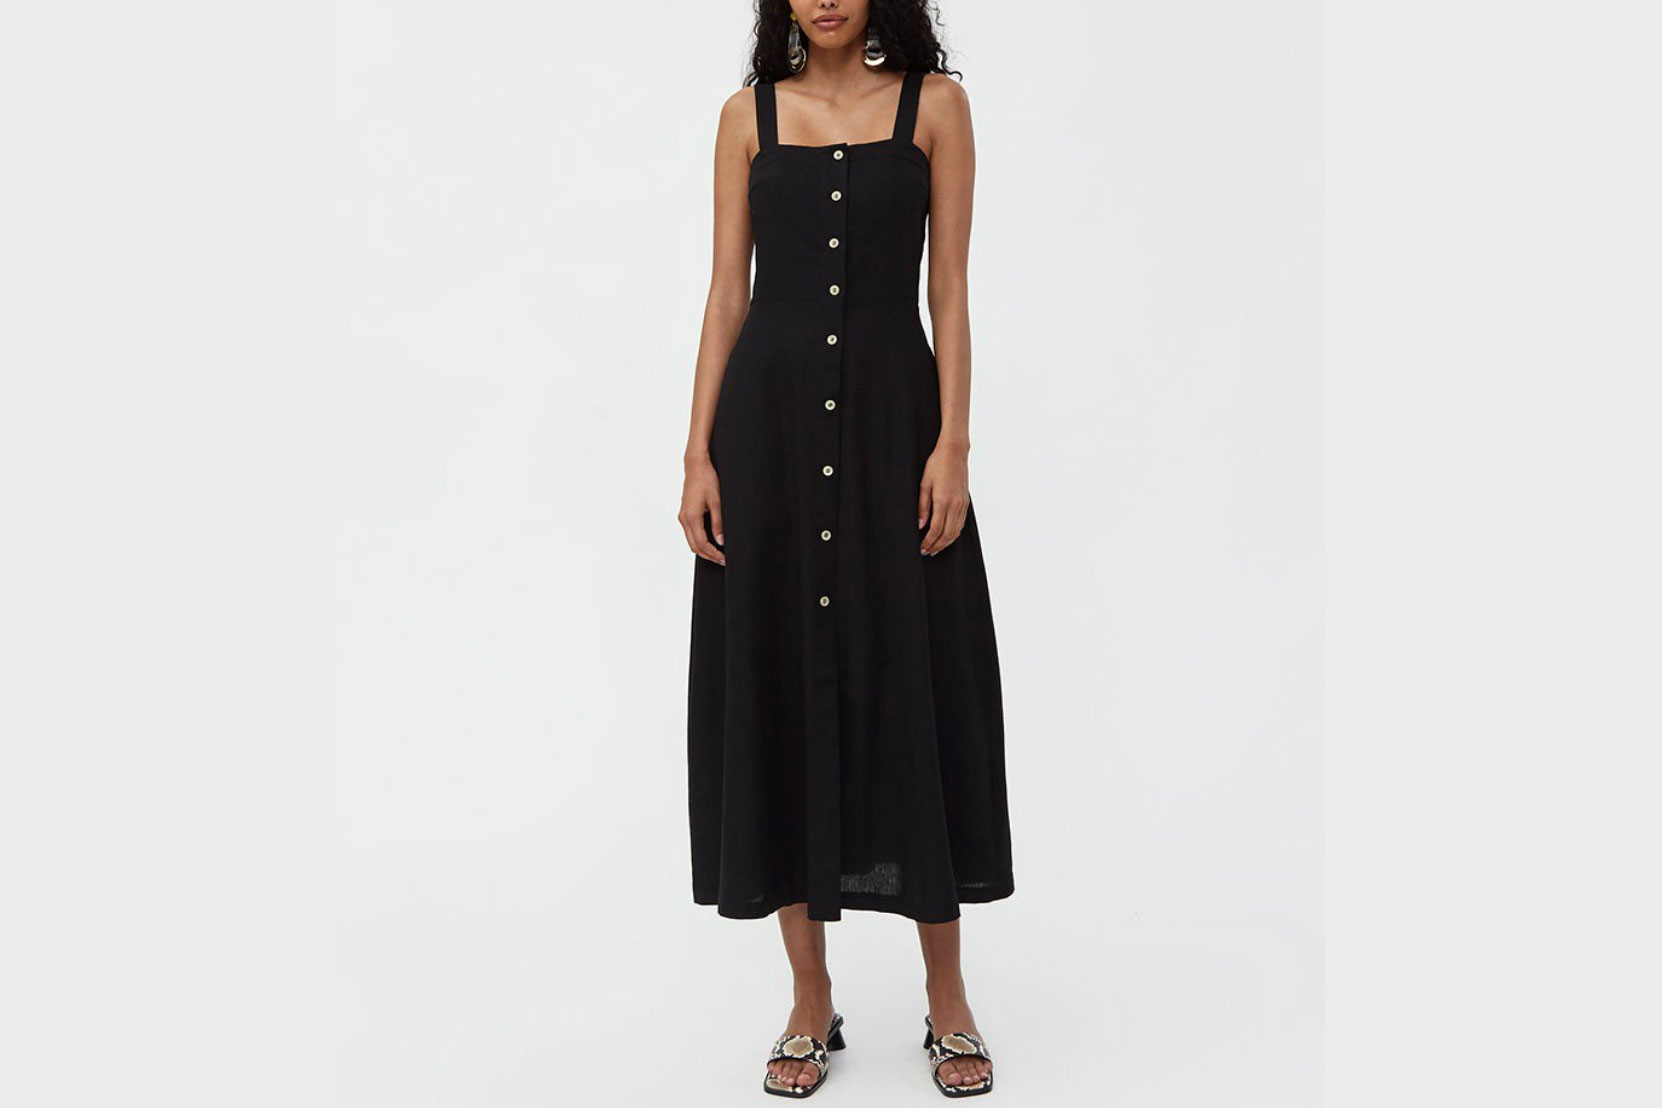 c69ccb2c0856 15 Best Linen Dresses for Summer 2019